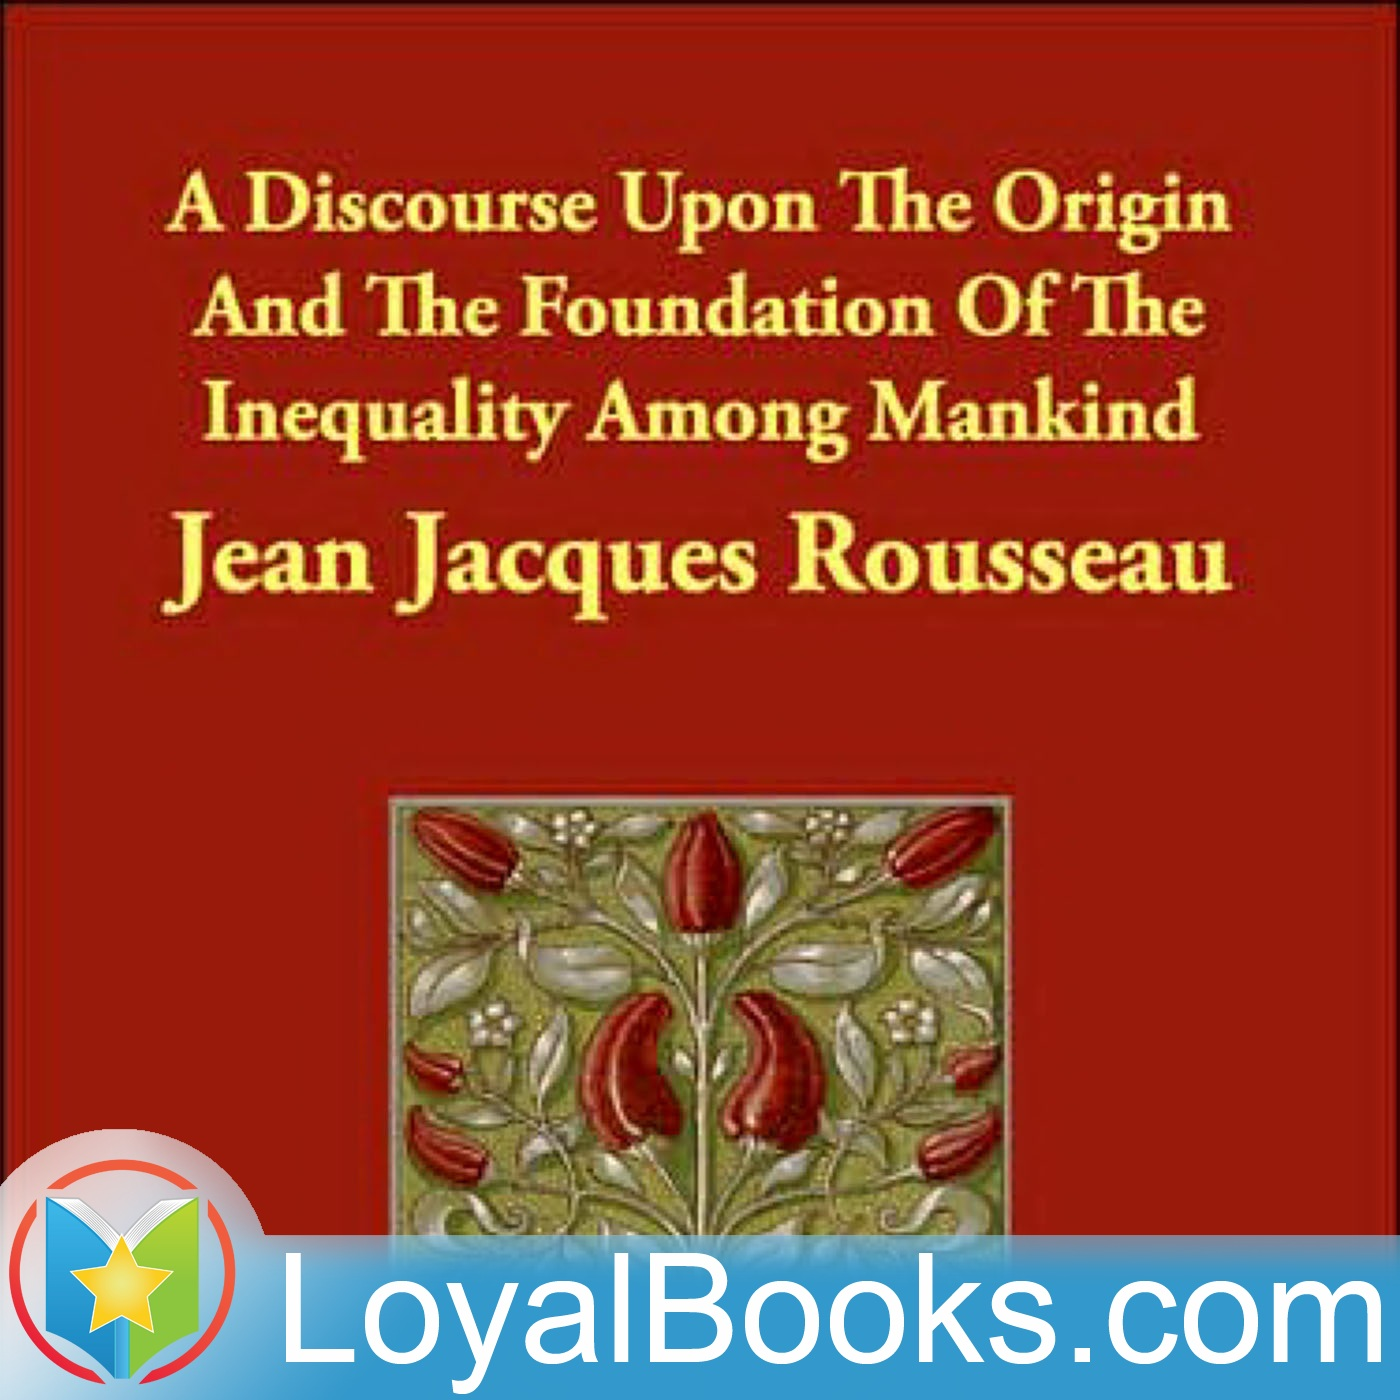 <![CDATA[A Discourse Upon the Origin and the Foundation of the Inequality Among Mankind by Jean-Jacques Rousseau]]>